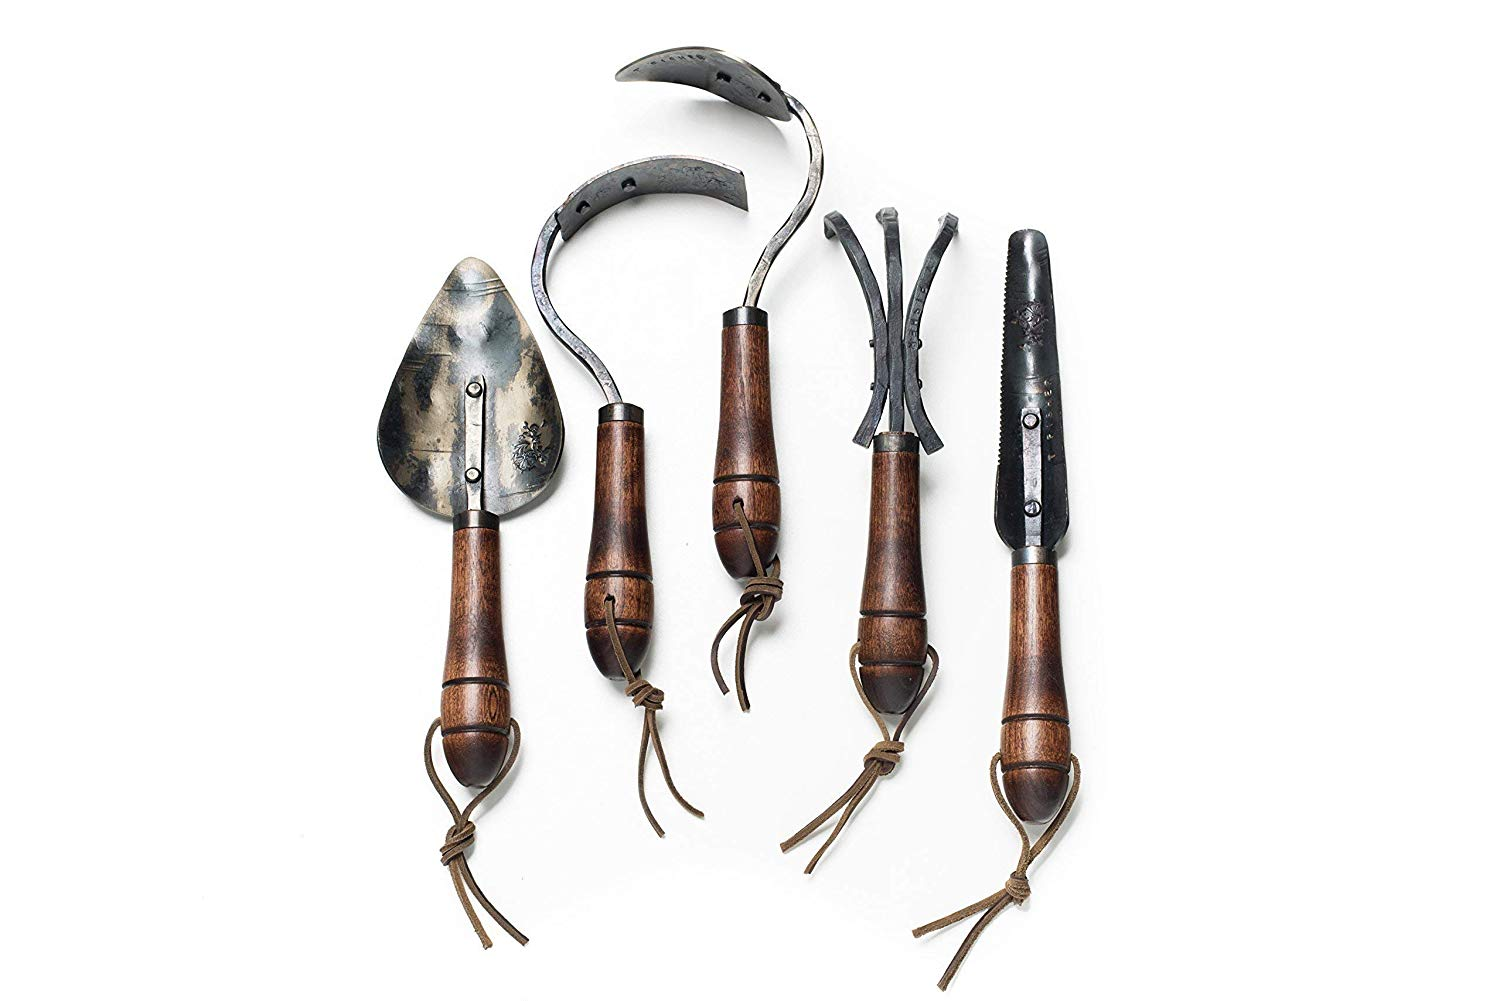 Garden Tool Gift Set, Set of Five Hand Forged Garden Tools, Gardening Tools, Gardening Tool Gift Set, Gardening Gift